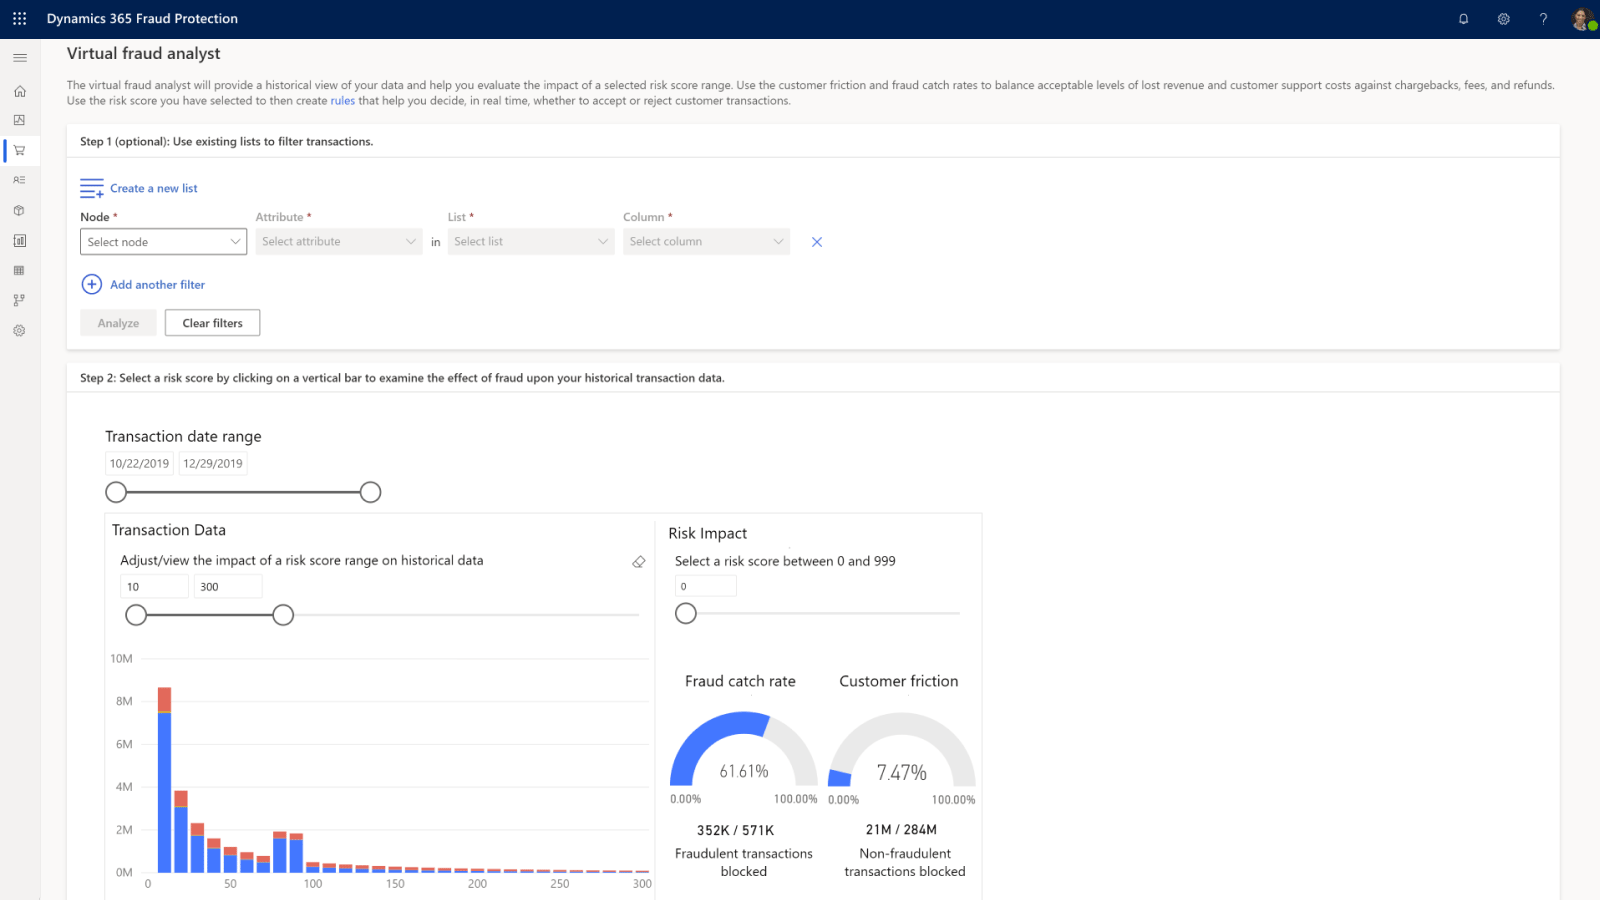 Visualización de Dynamics 365 Fraud Protection